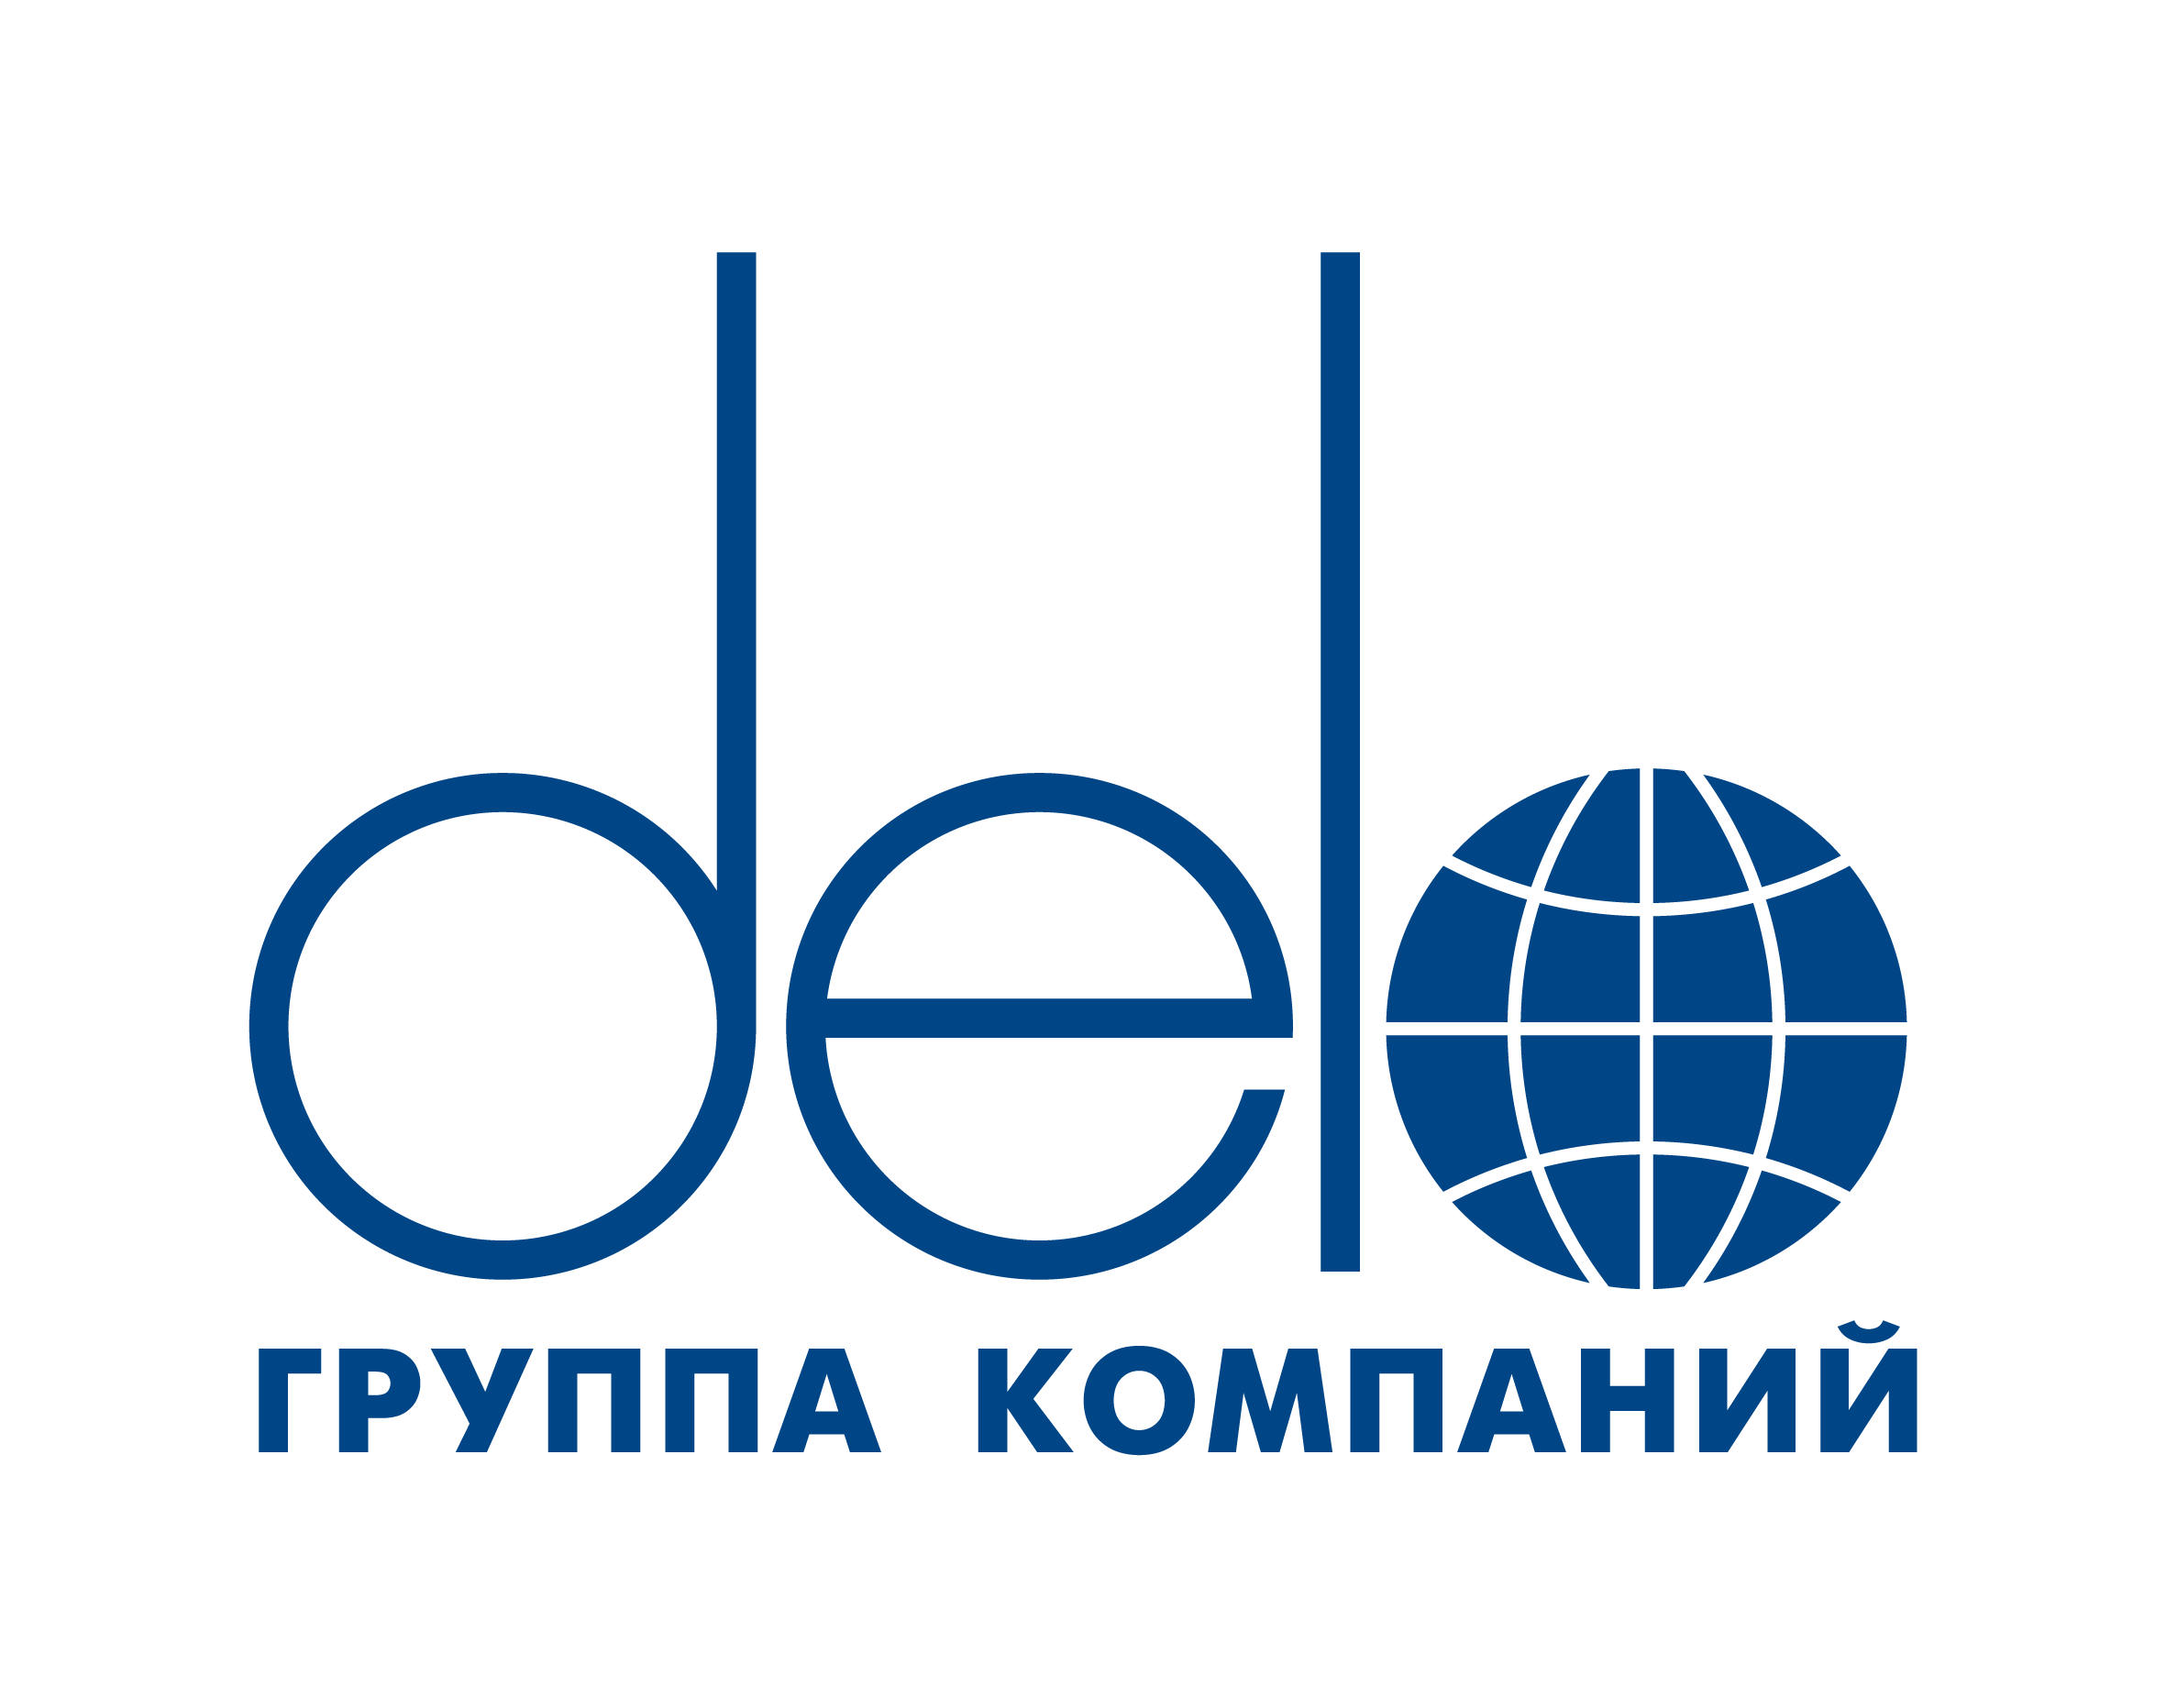 DELO Group logo blue